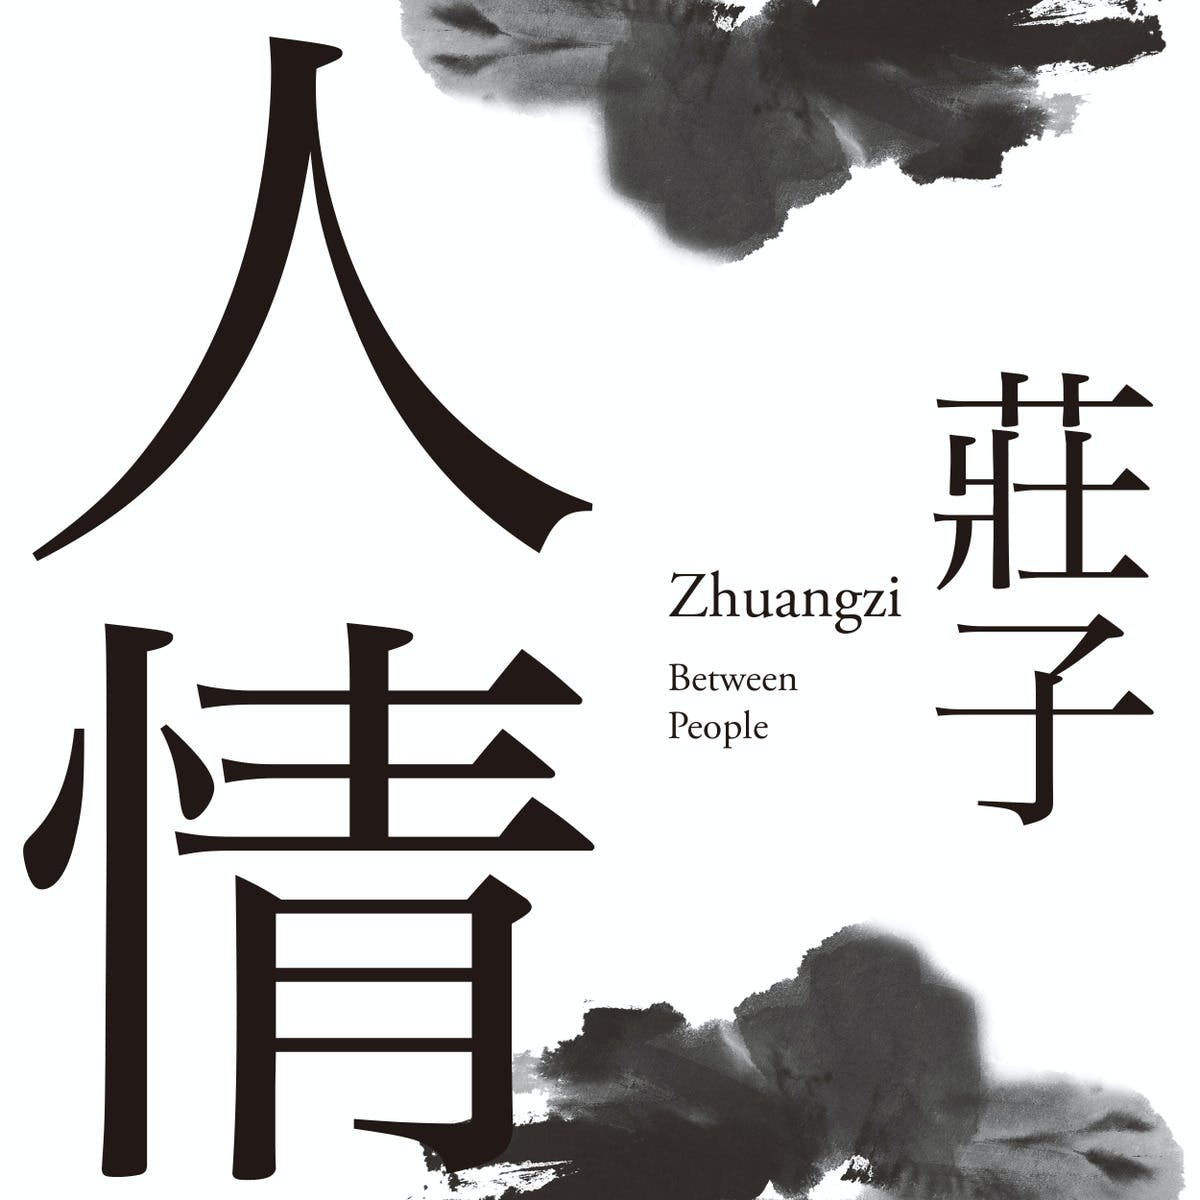 莊子─人情 (Zhuangzi─Between People)